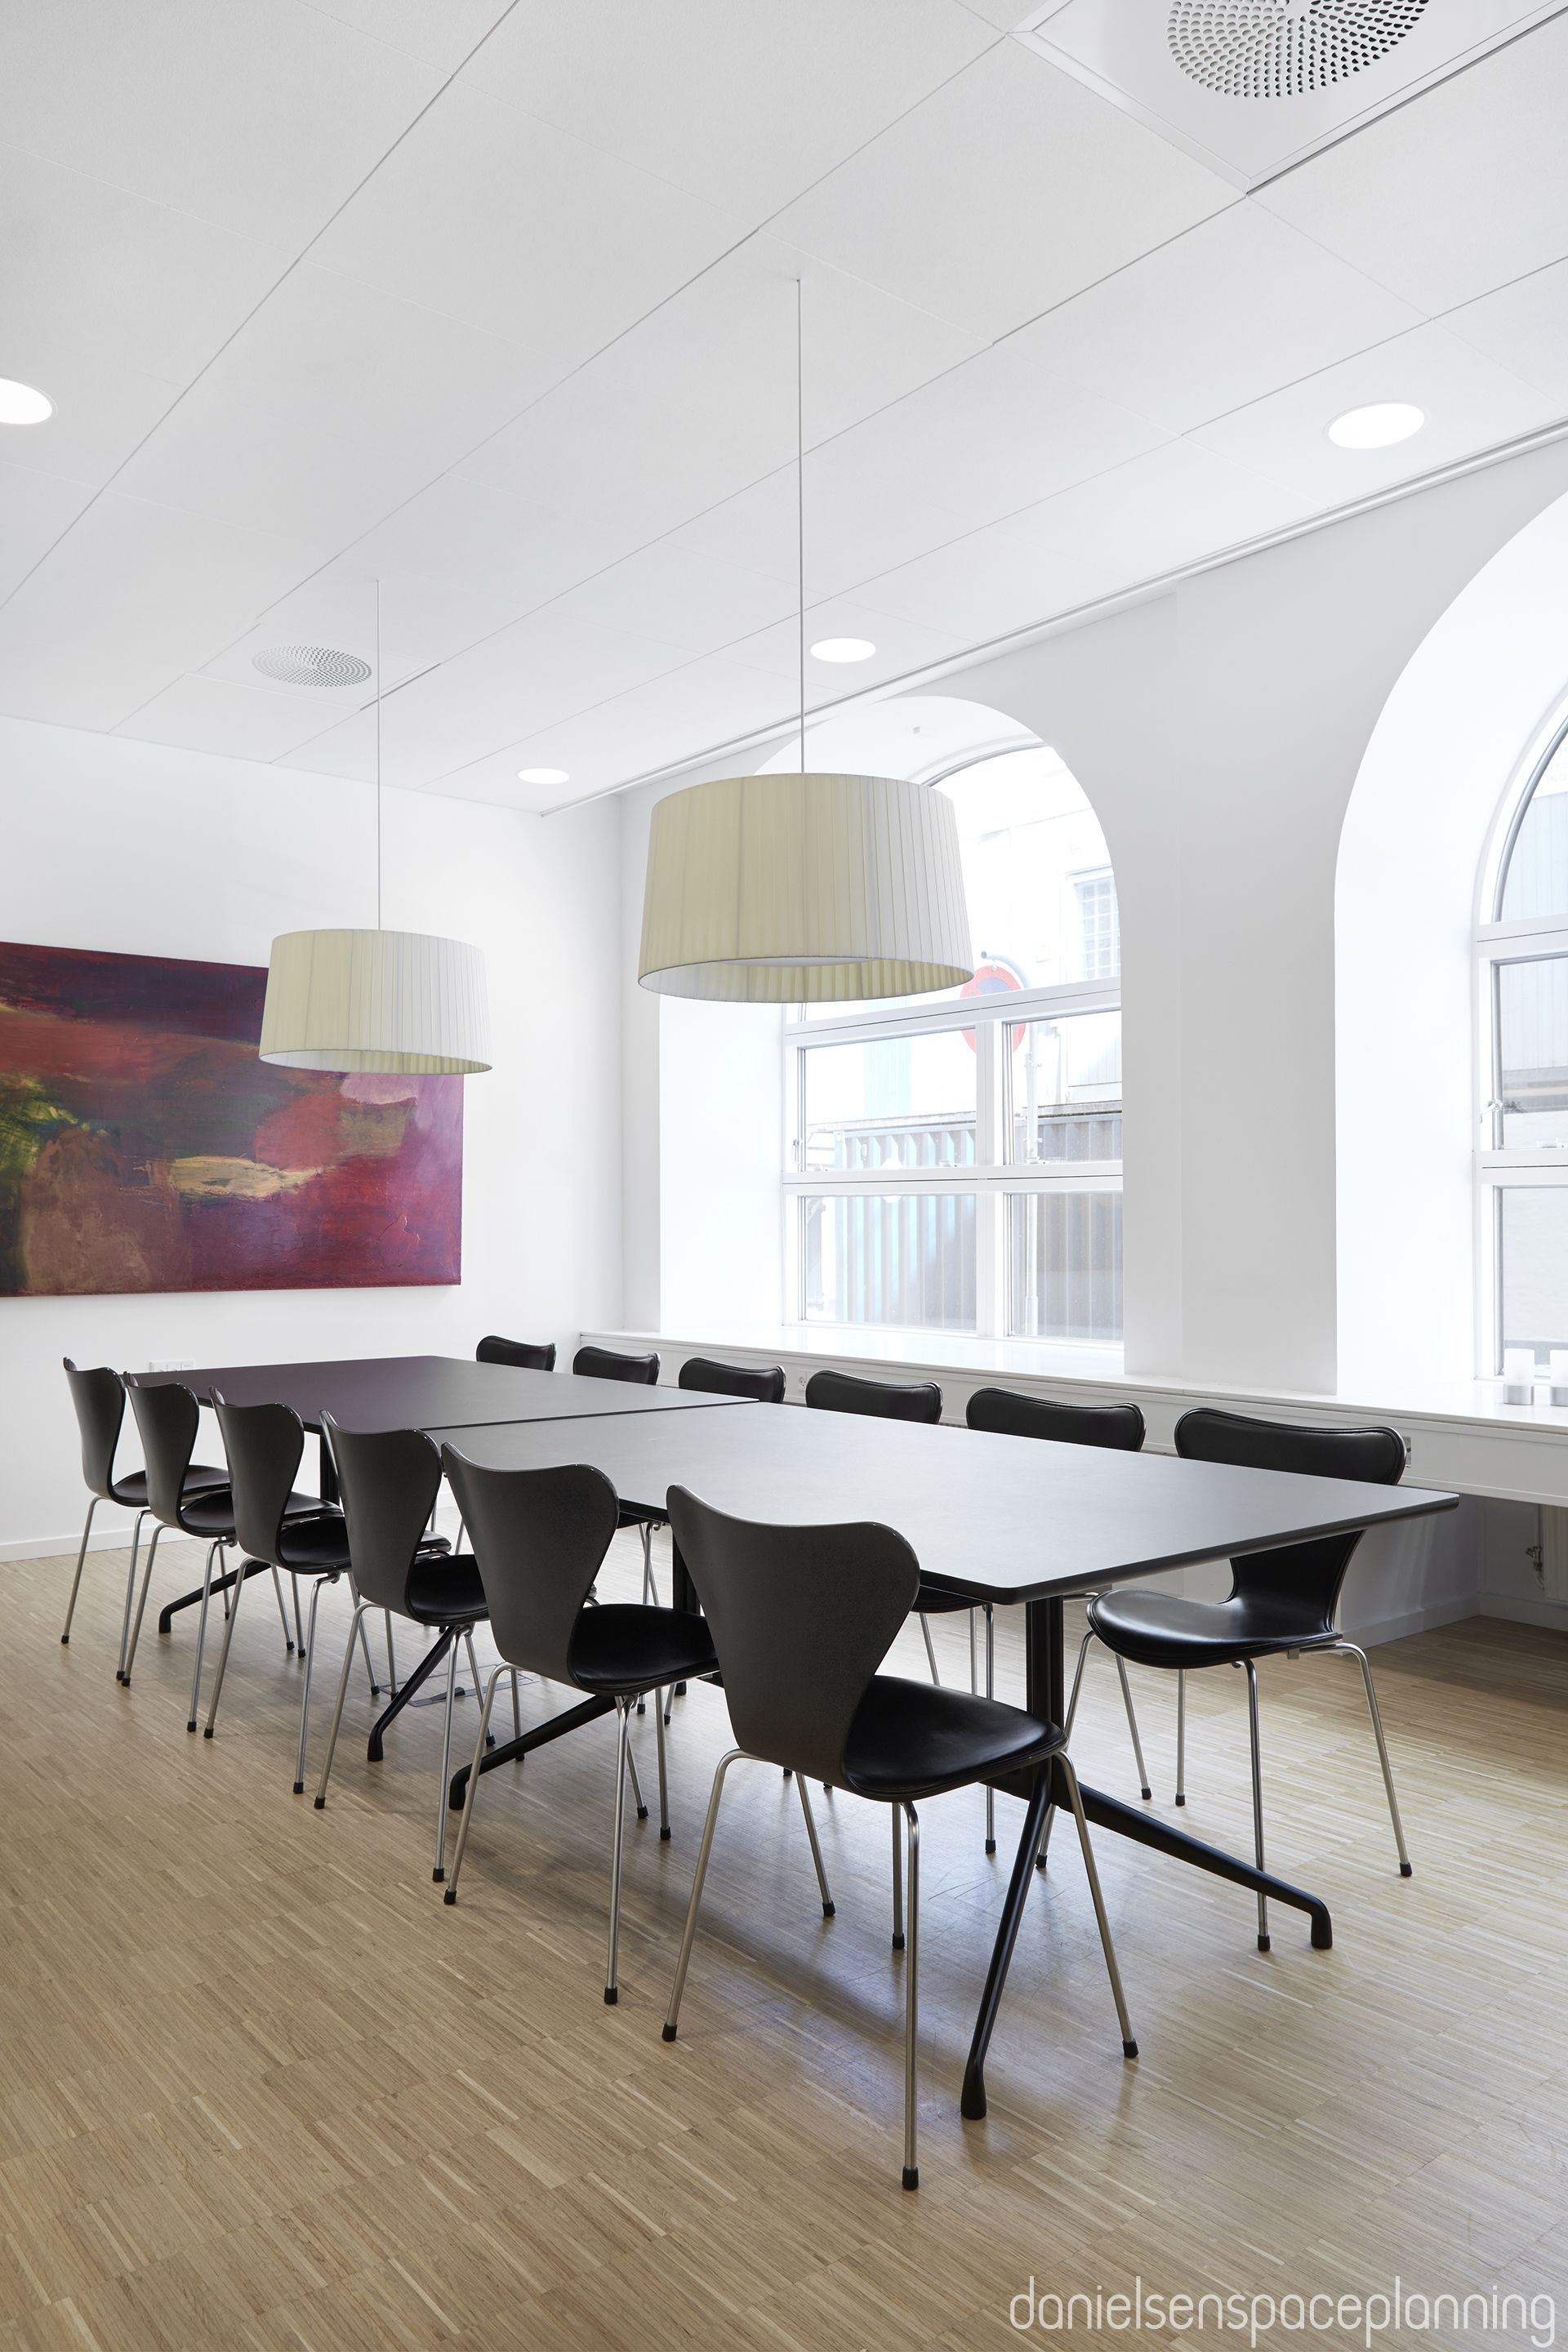 Meeting room - AON's office interior design in Copenhagen - by Danielsen Spaceplanning